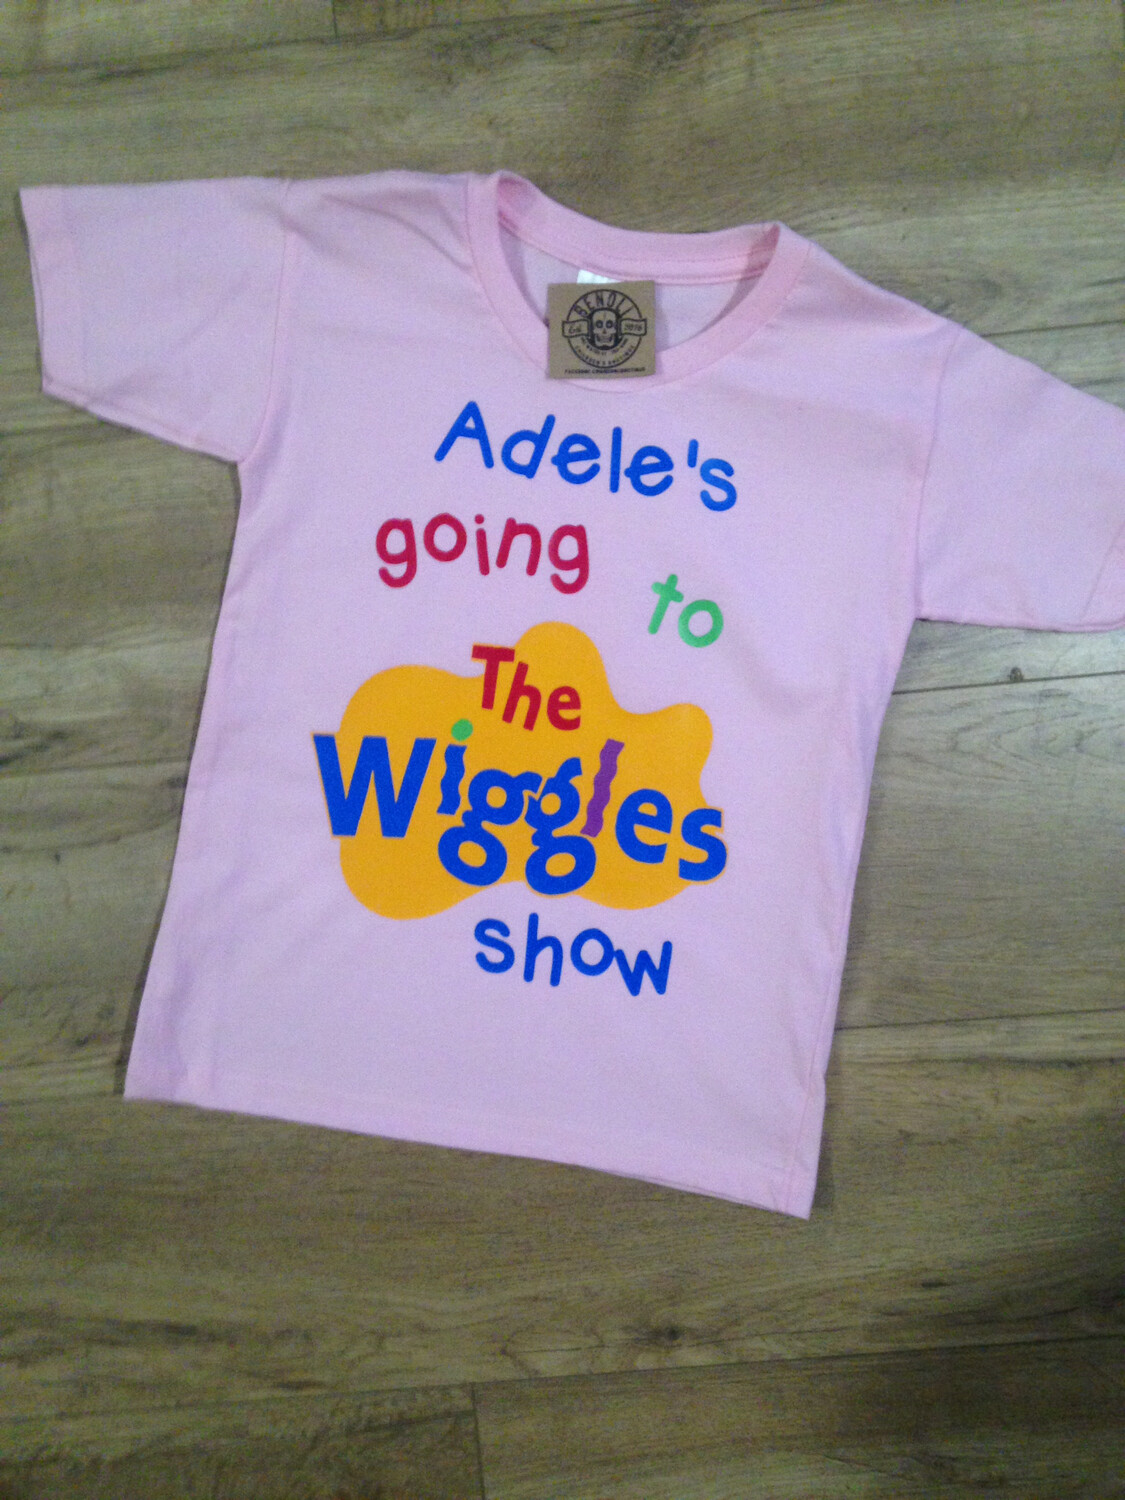 Going to The Wiggles Show